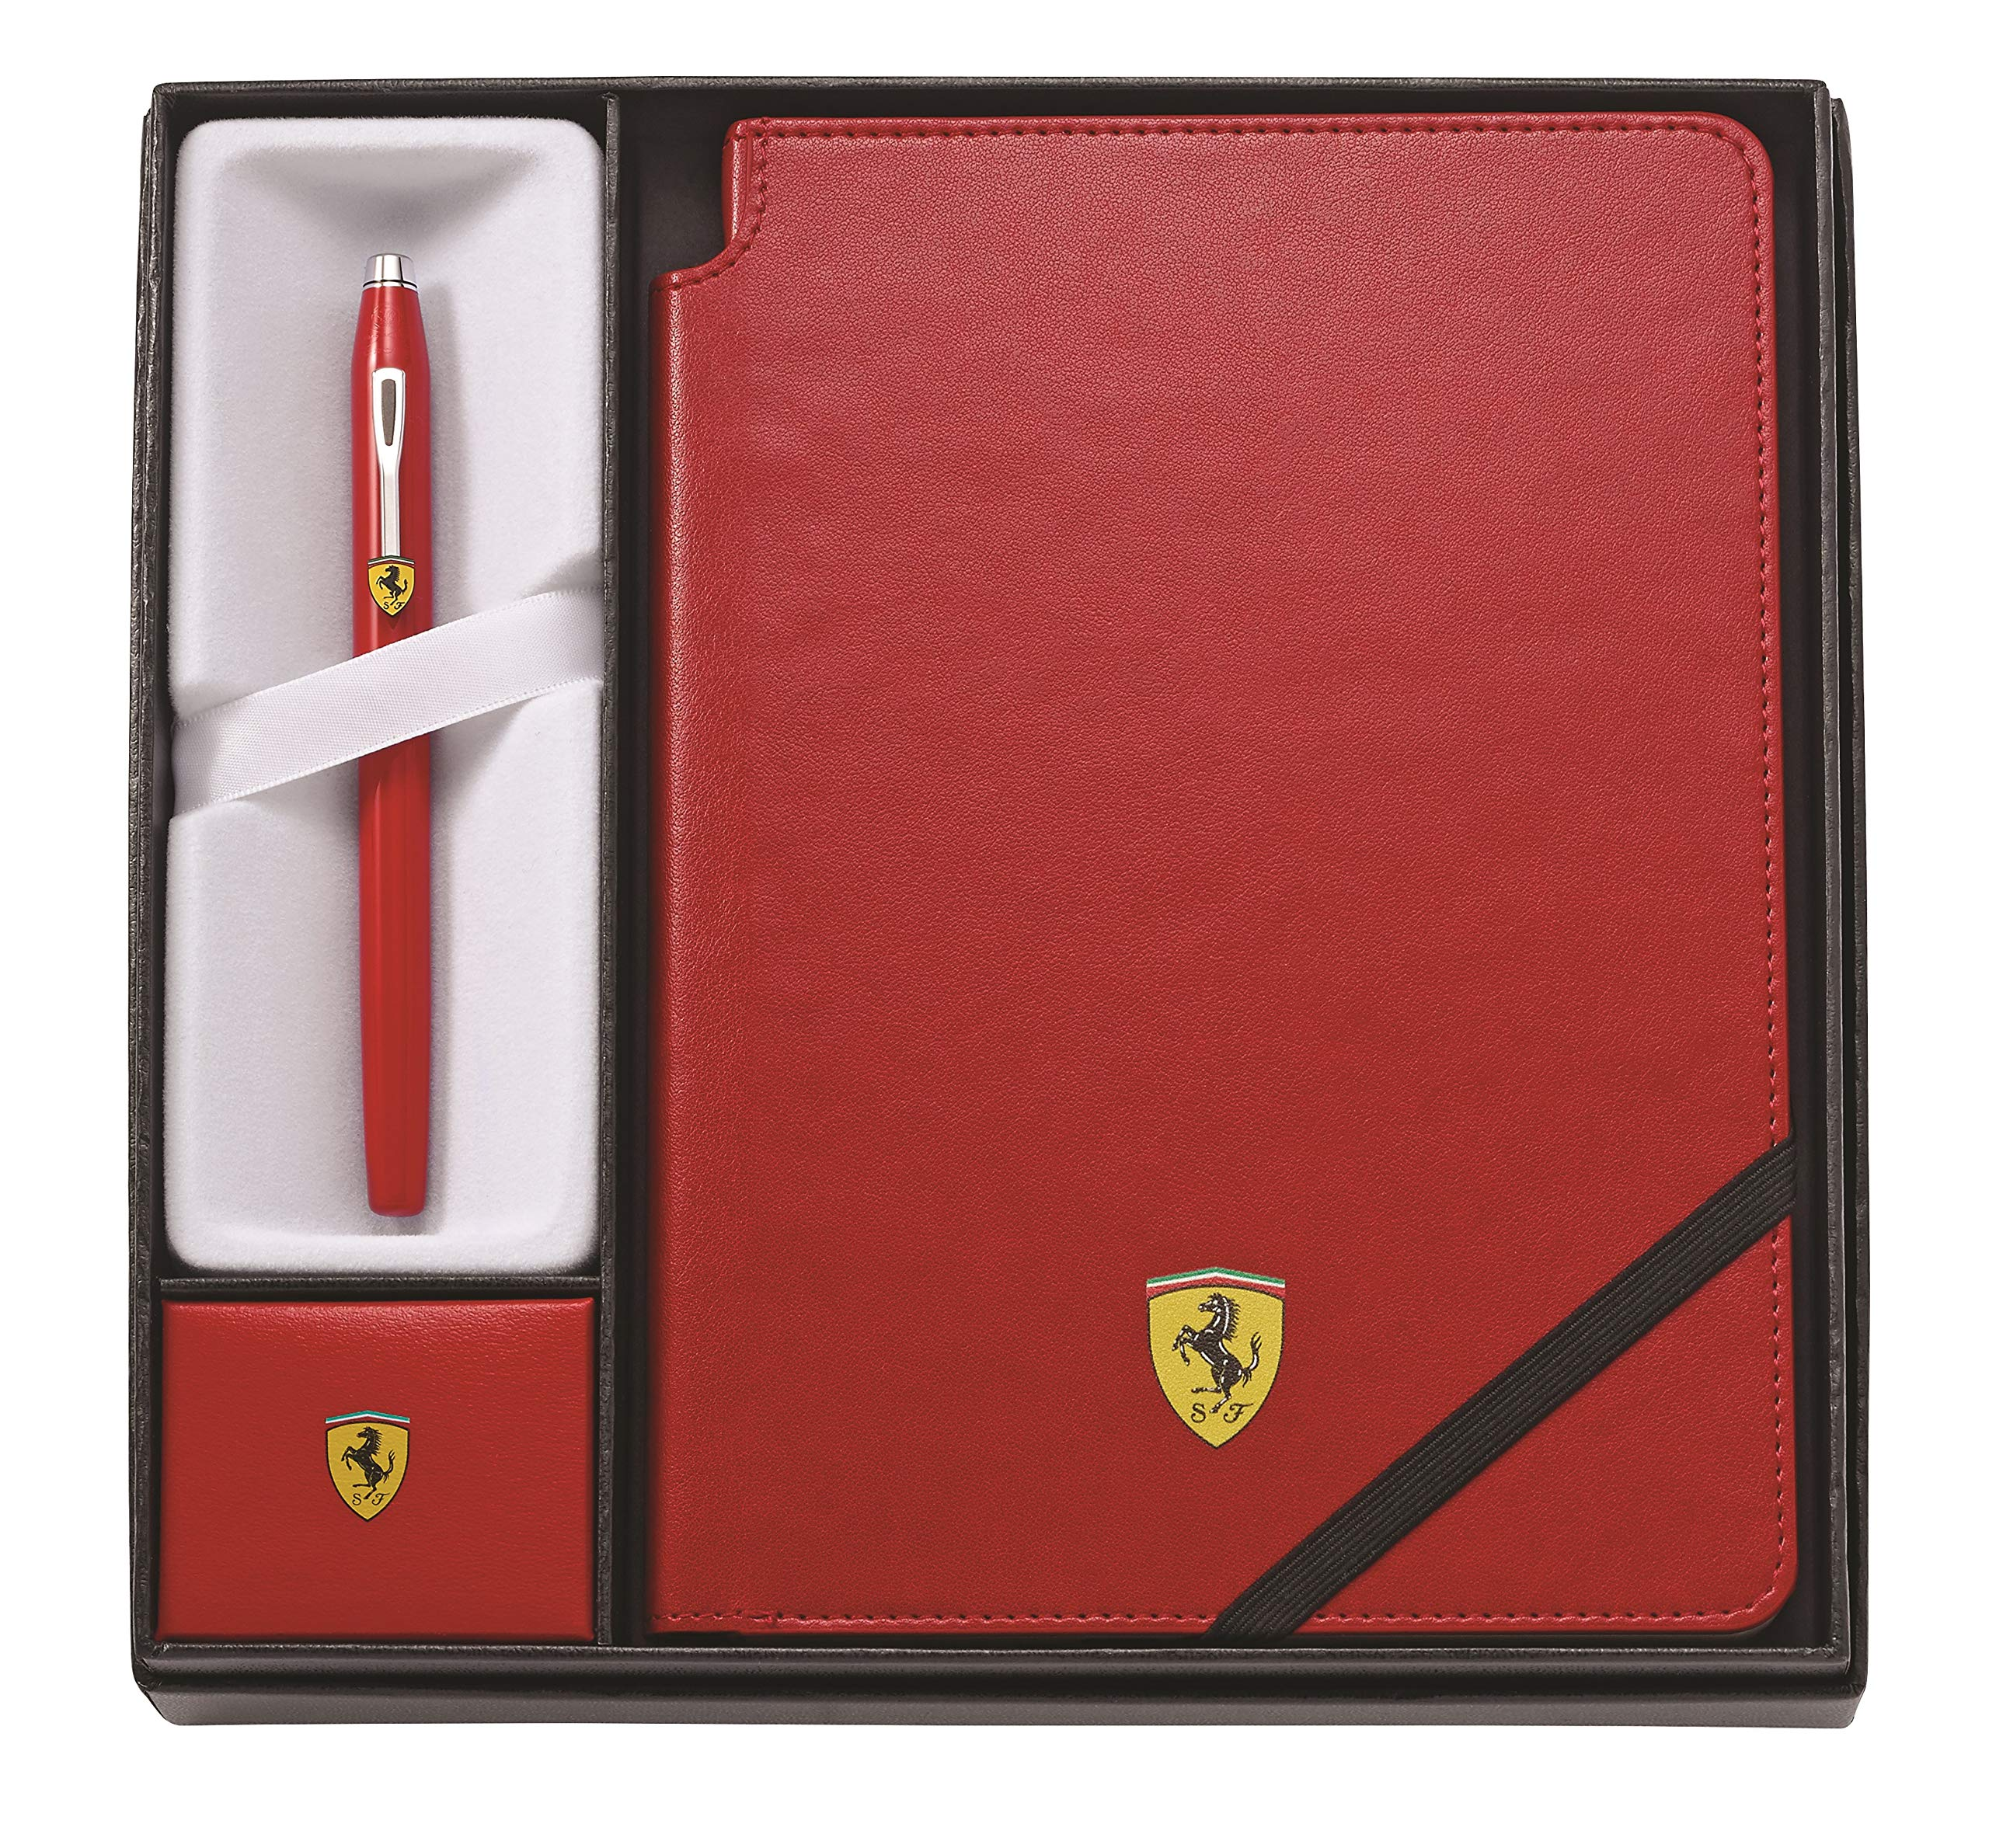 Cross Century II Collection for Scuderia Ferrari - Glossy Rosso Corsa Red Lacquer Rollerball Pen & Rosso Corsa Red Medium Journal by Cross (Image #1)